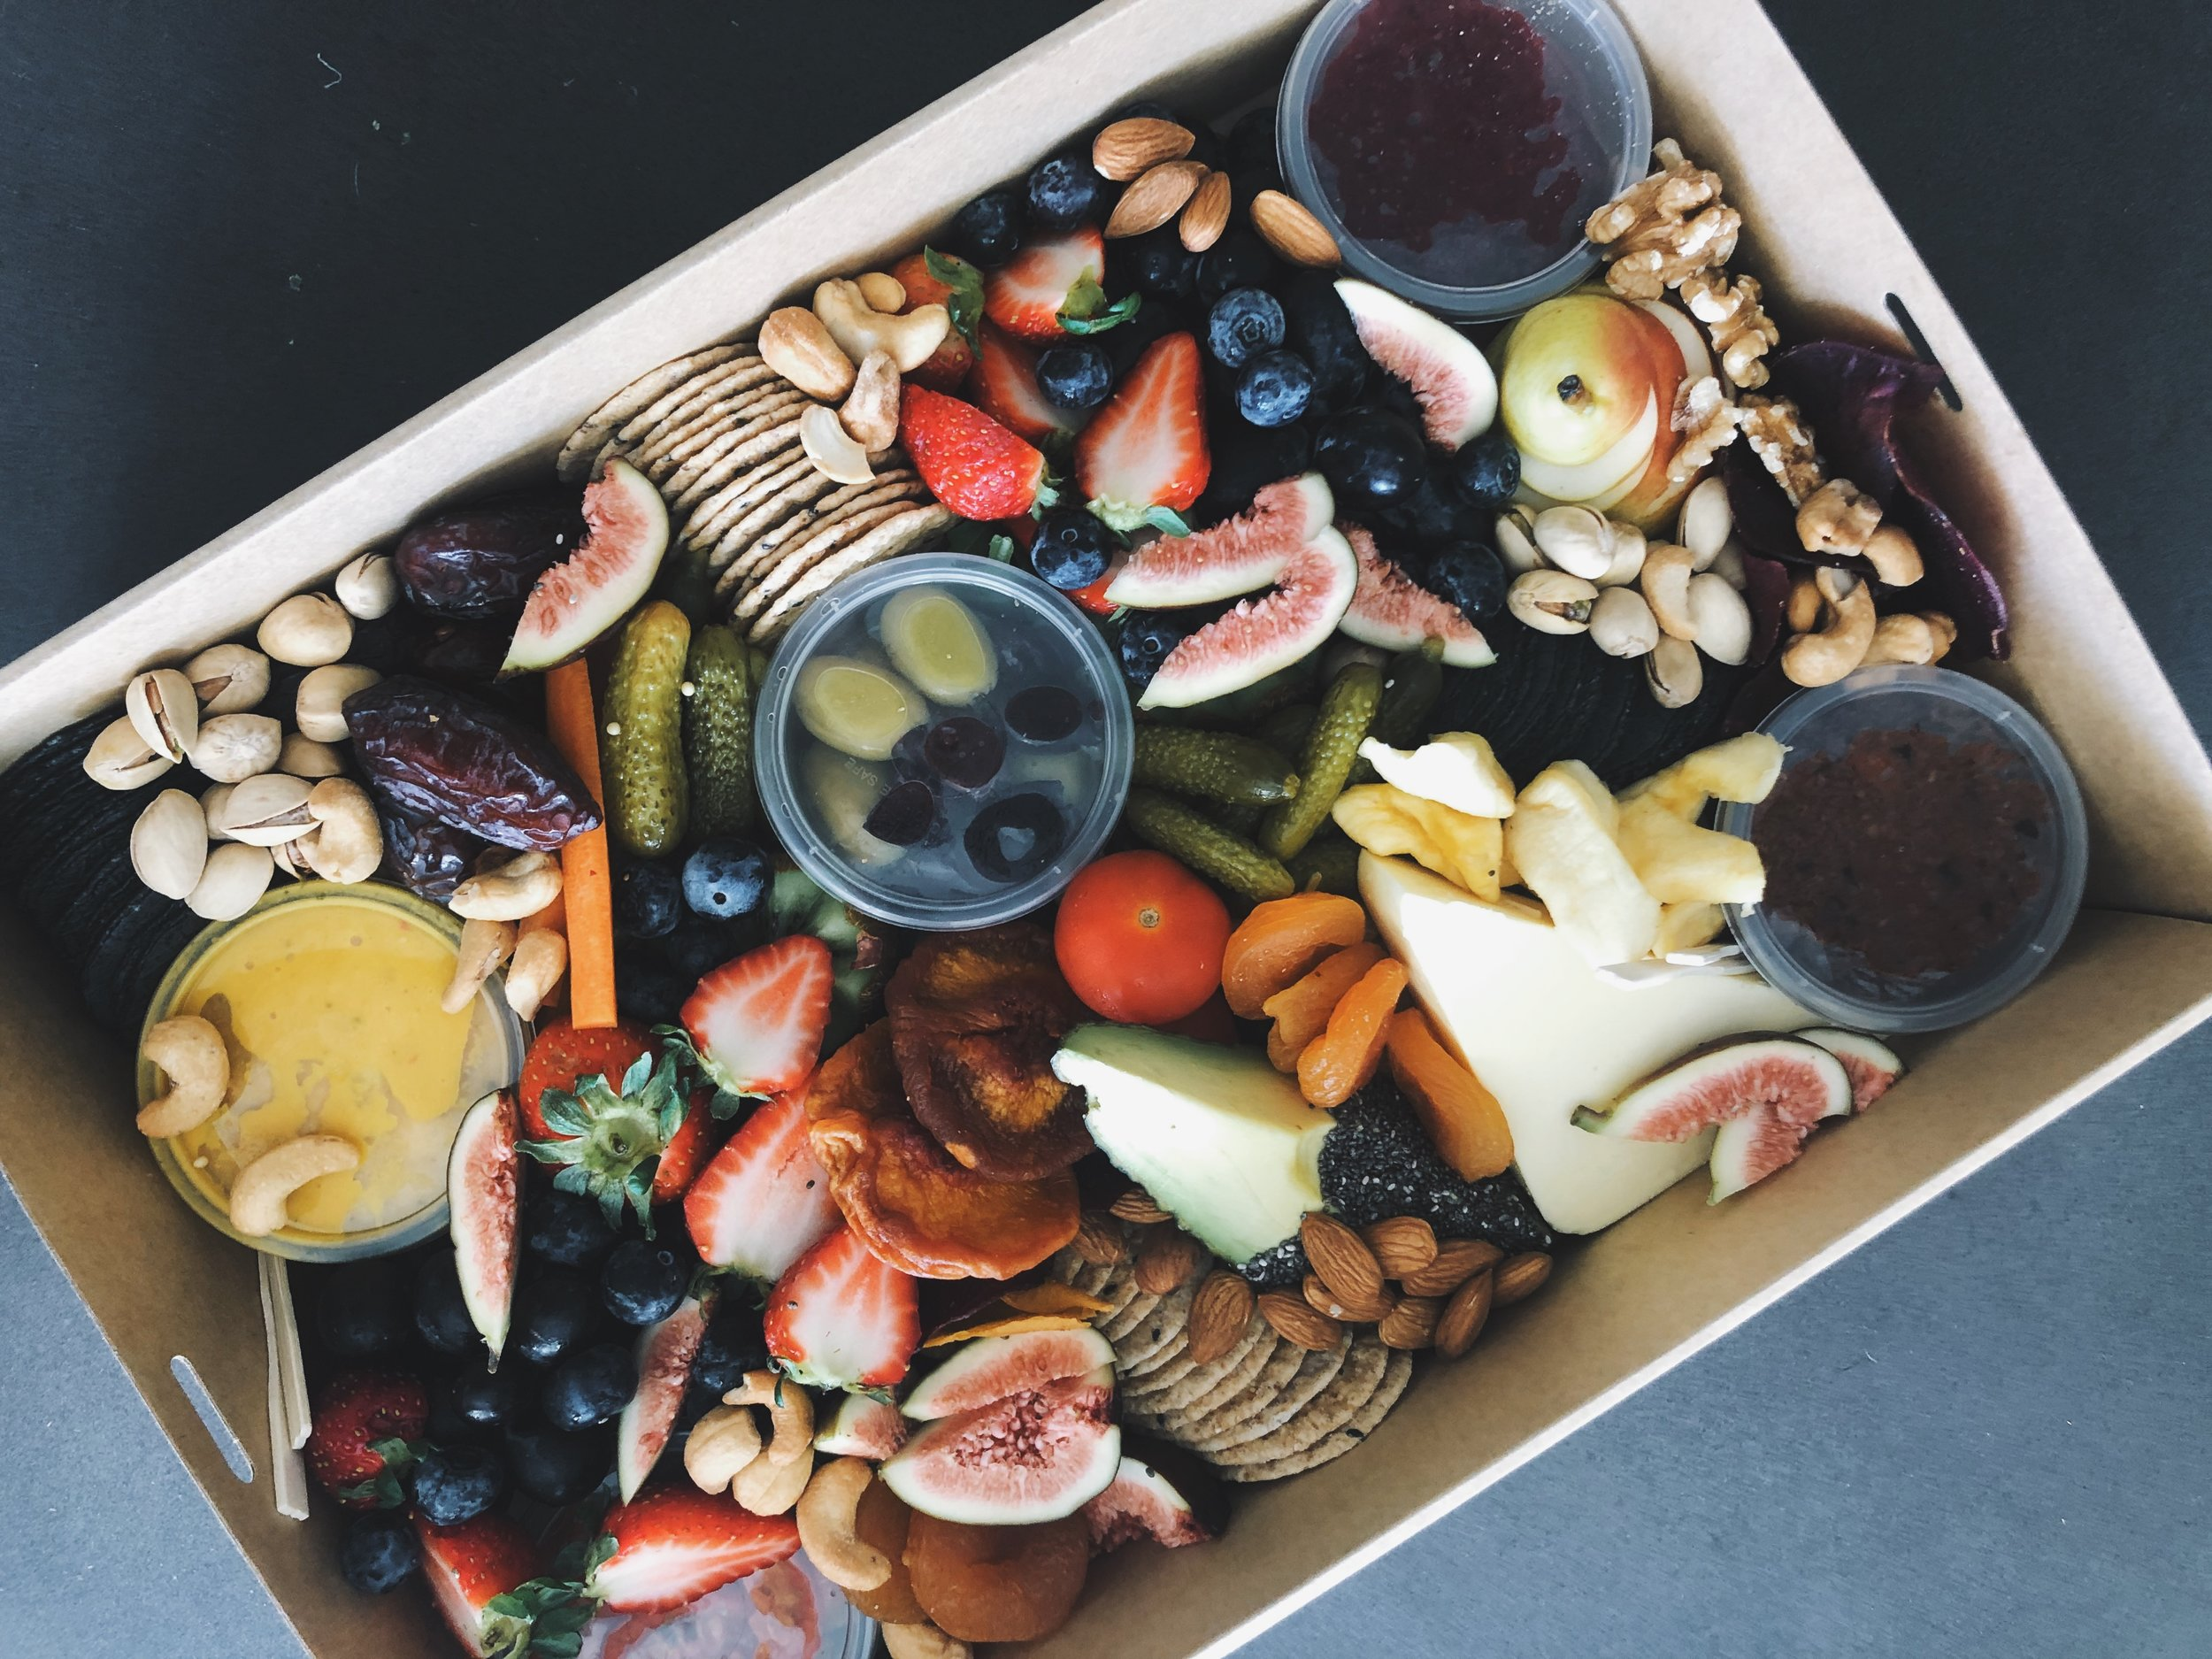 MEDIUM VEGAN PLATTER BOX$90.00 - Suitable for 2 - 4 people